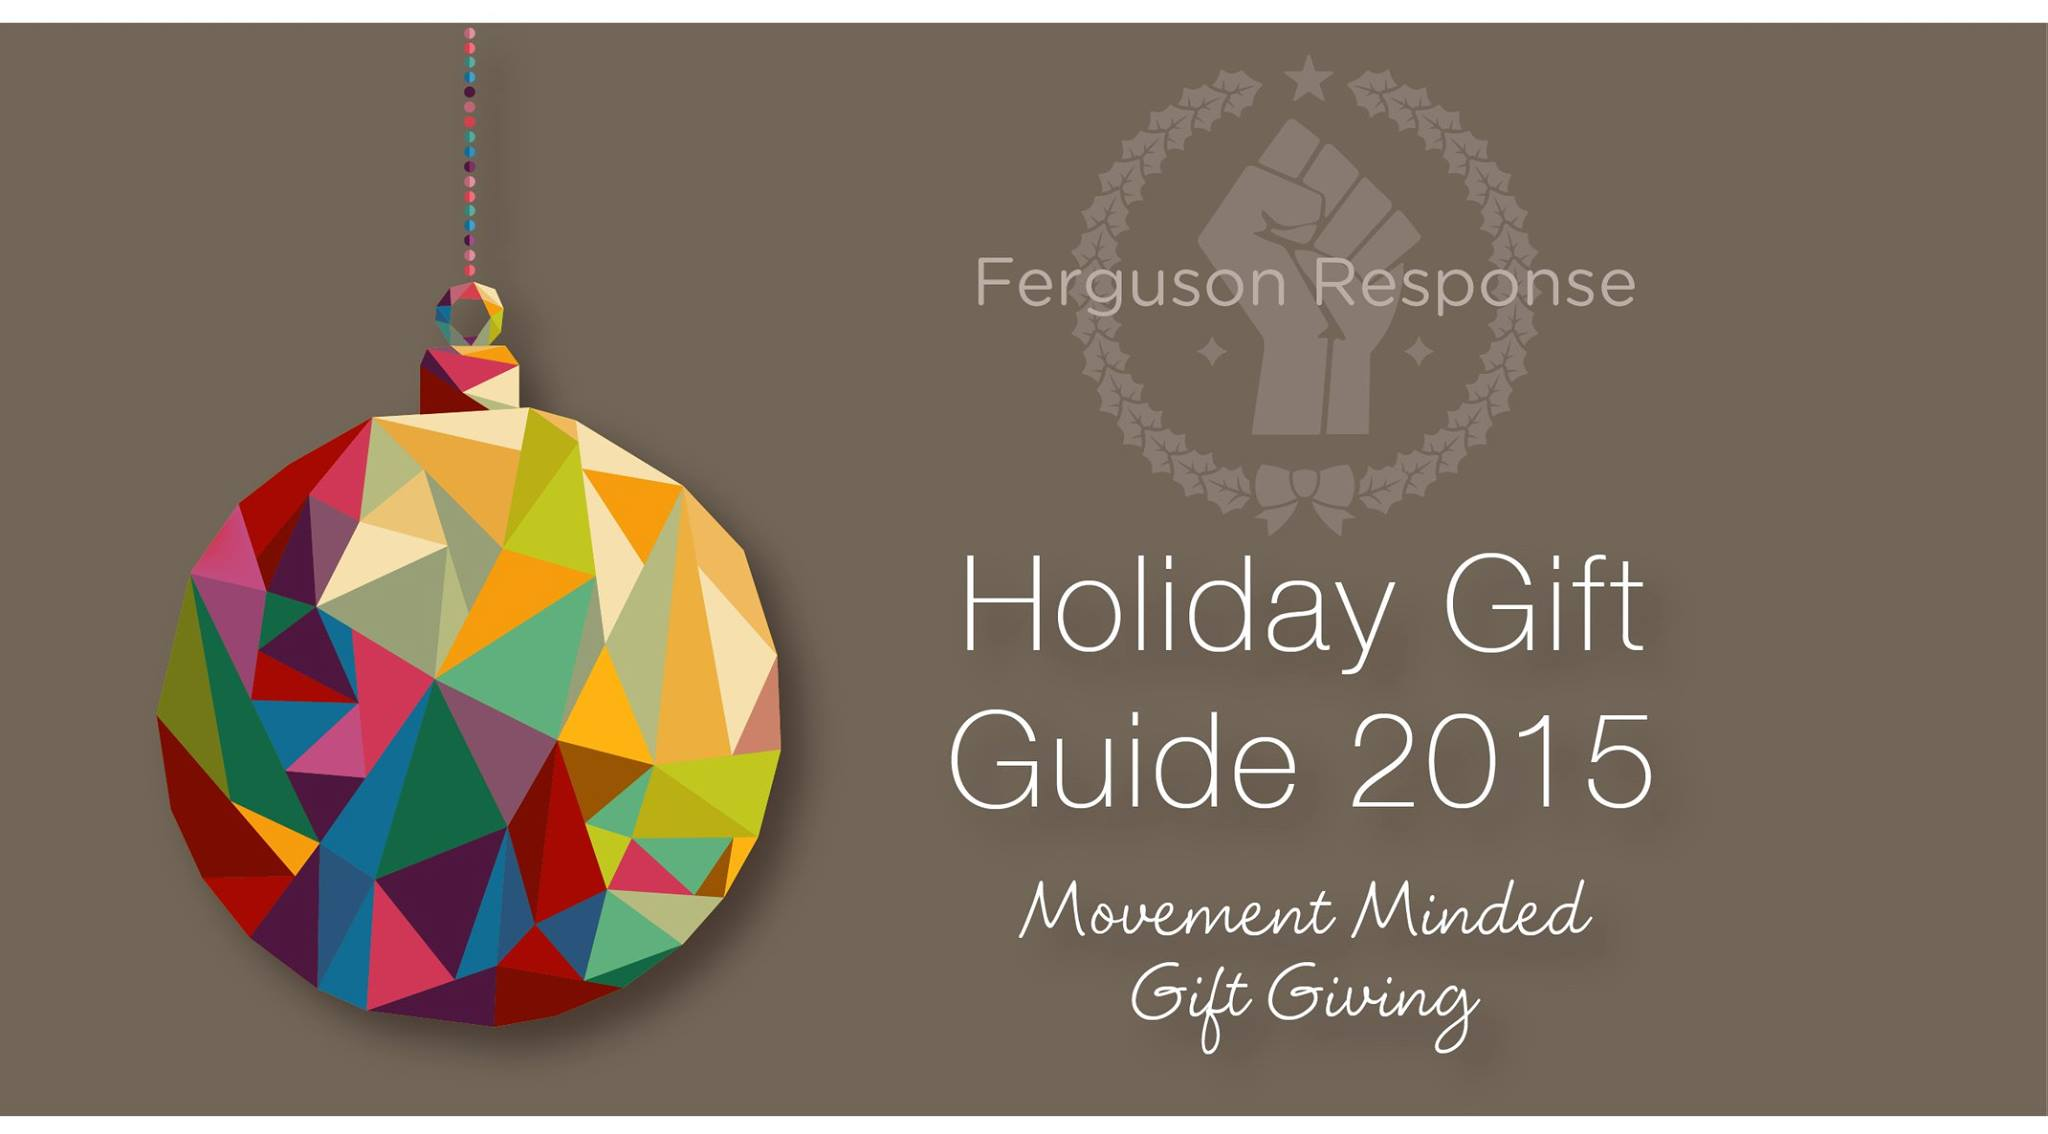 FRN Holiday Gift Guide 2015